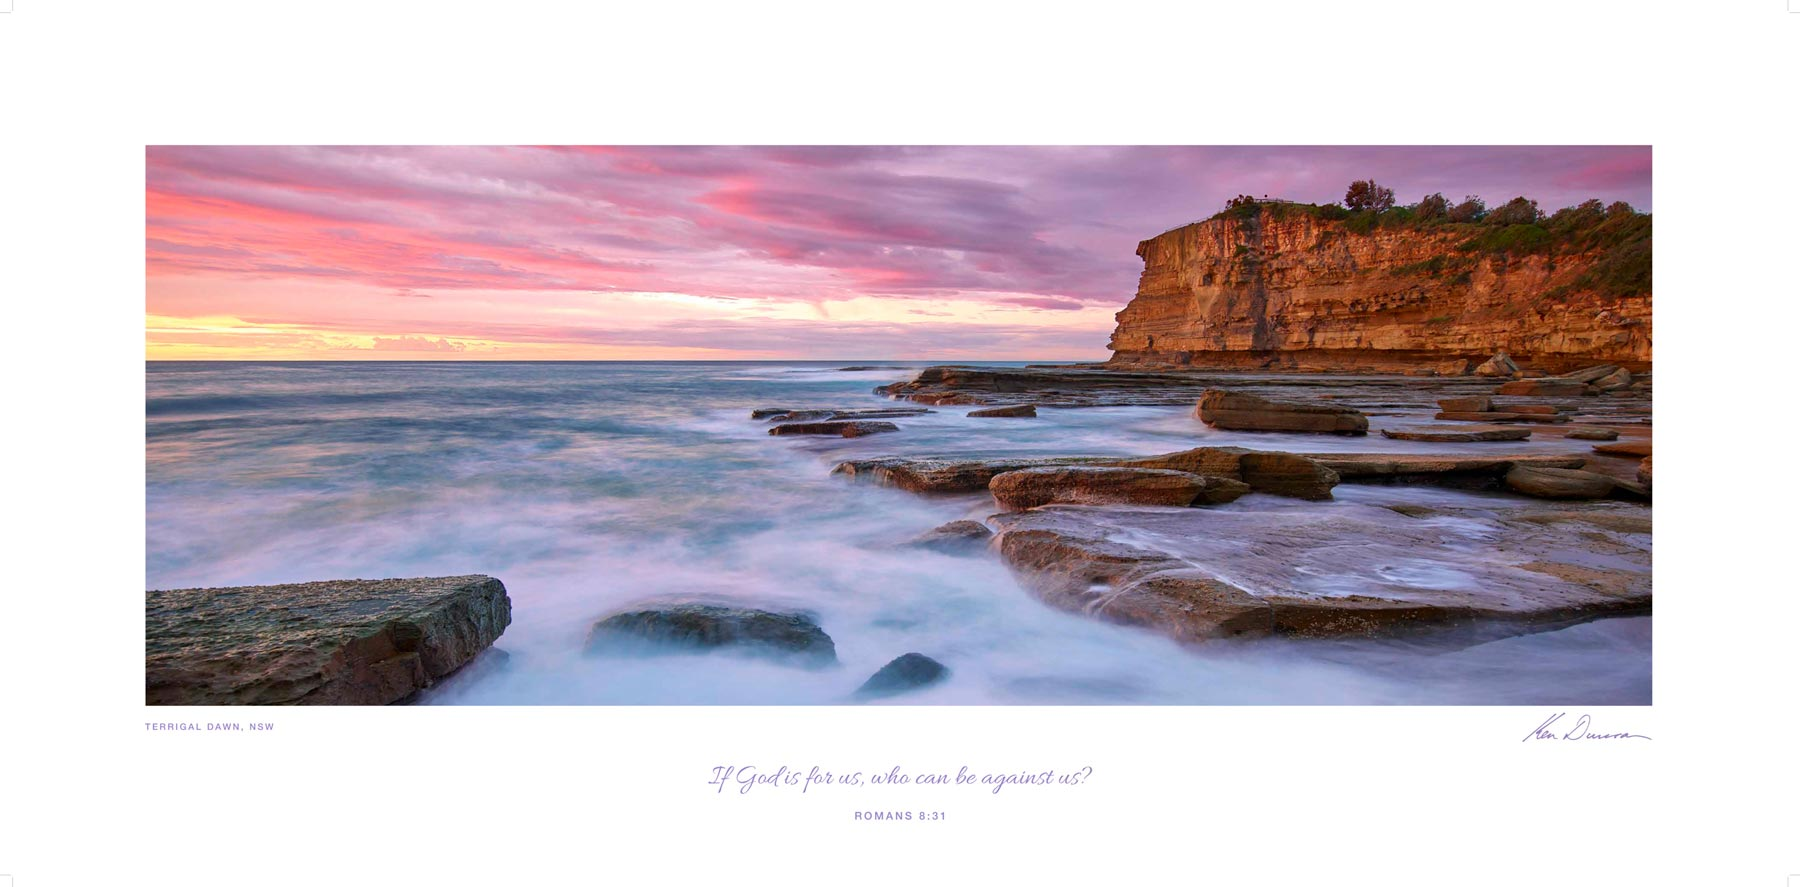 Terrigal Dawn, New South Wales